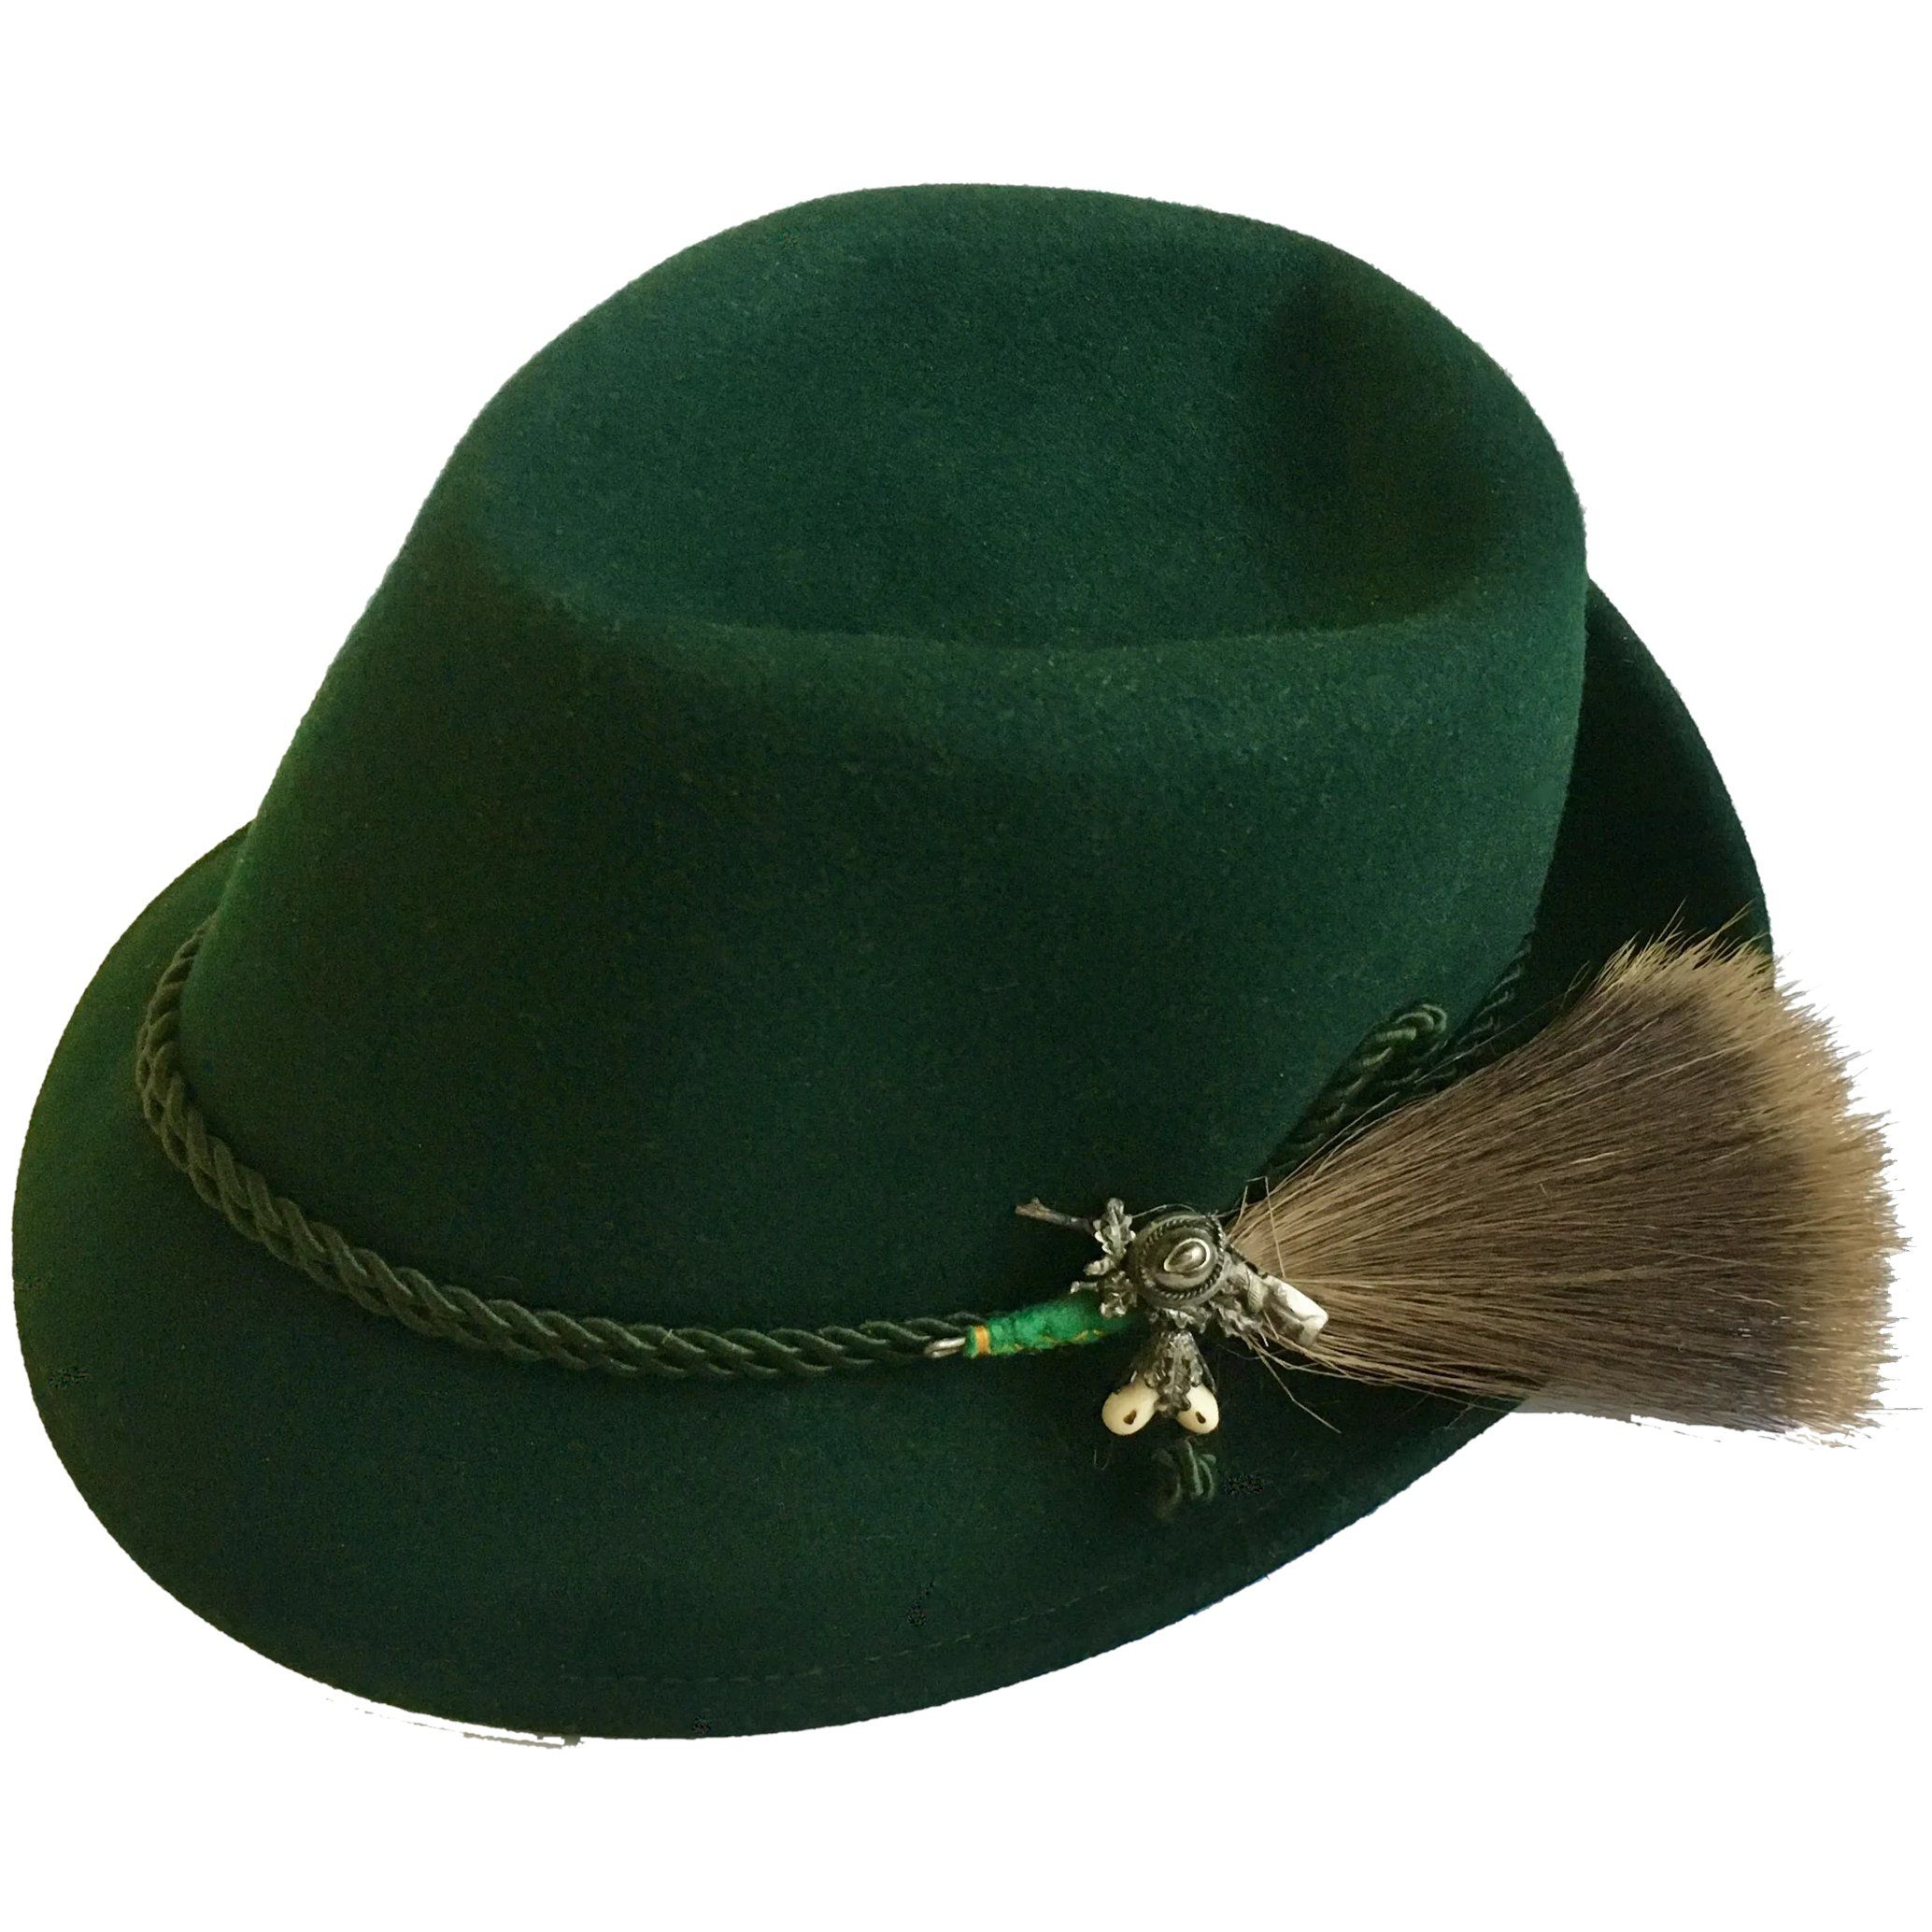 This Is A Very Nice Vintage Dark Green Felt Alpine Hat It Has A Pewter Hunting Pin With A Gamsbart Hair Brush Attached To The Side Hats Elegant Hats Dirndls